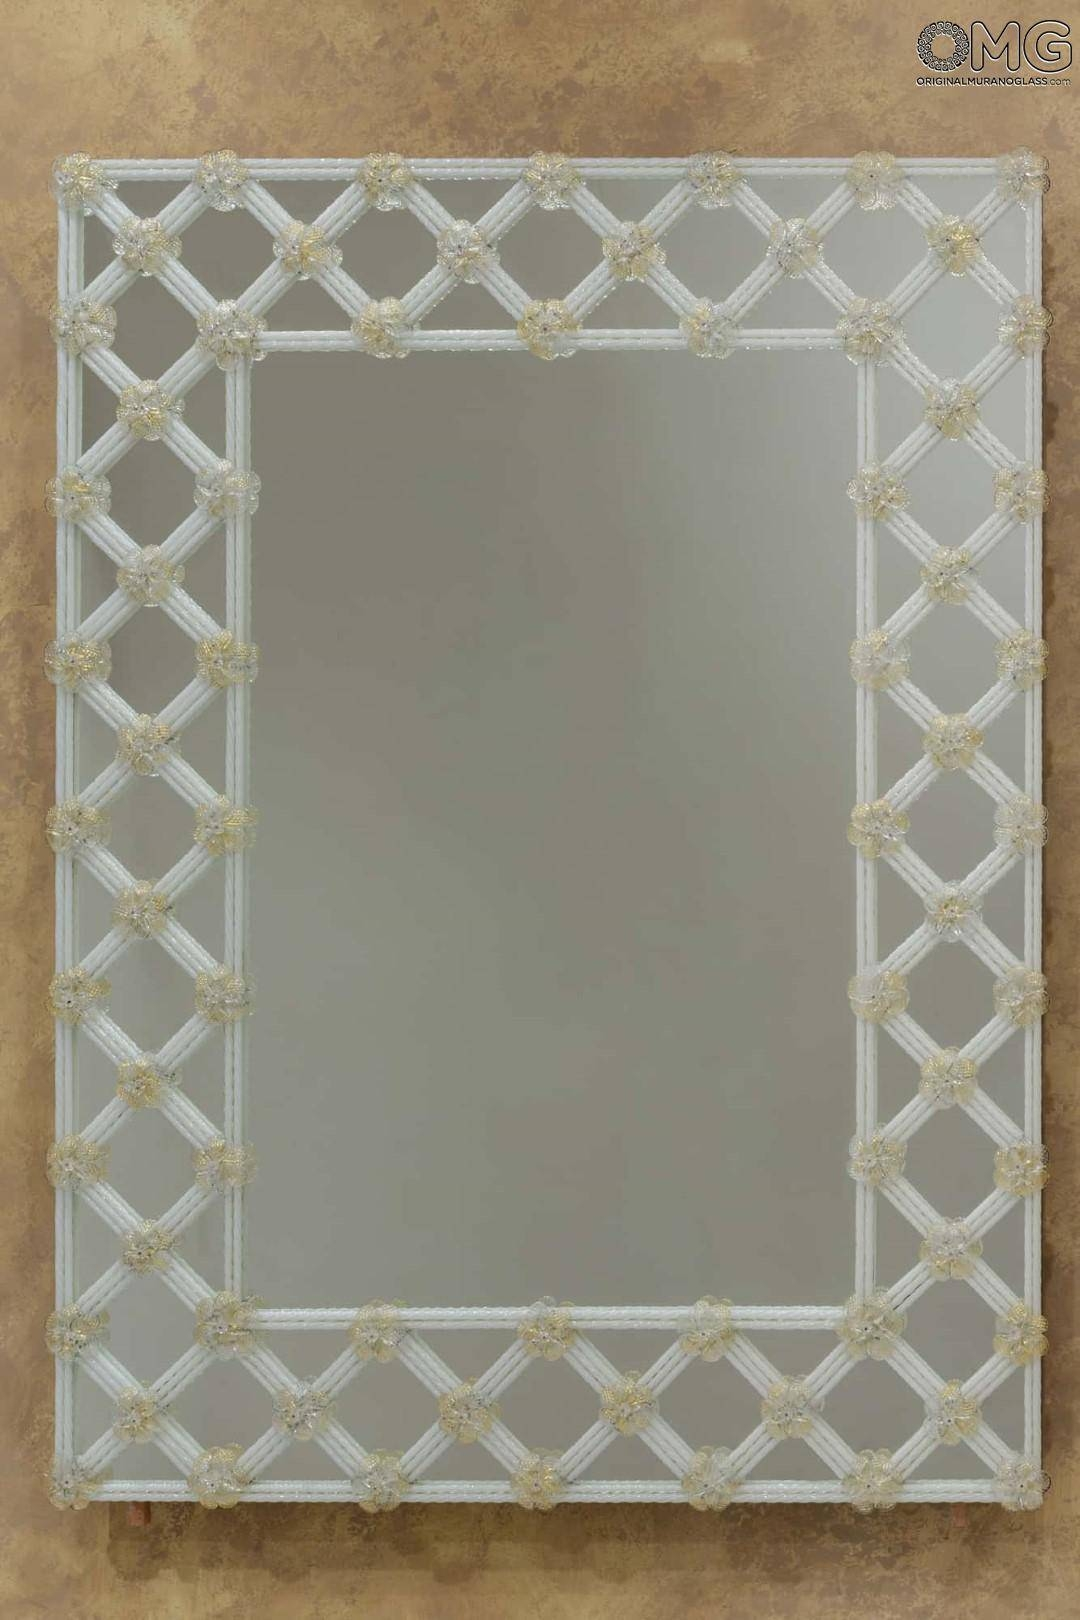 Venetian Mirrors - Engraved And With Murano Glass : Pure White And regarding Gold Venetian Mirrors (Image 24 of 25)